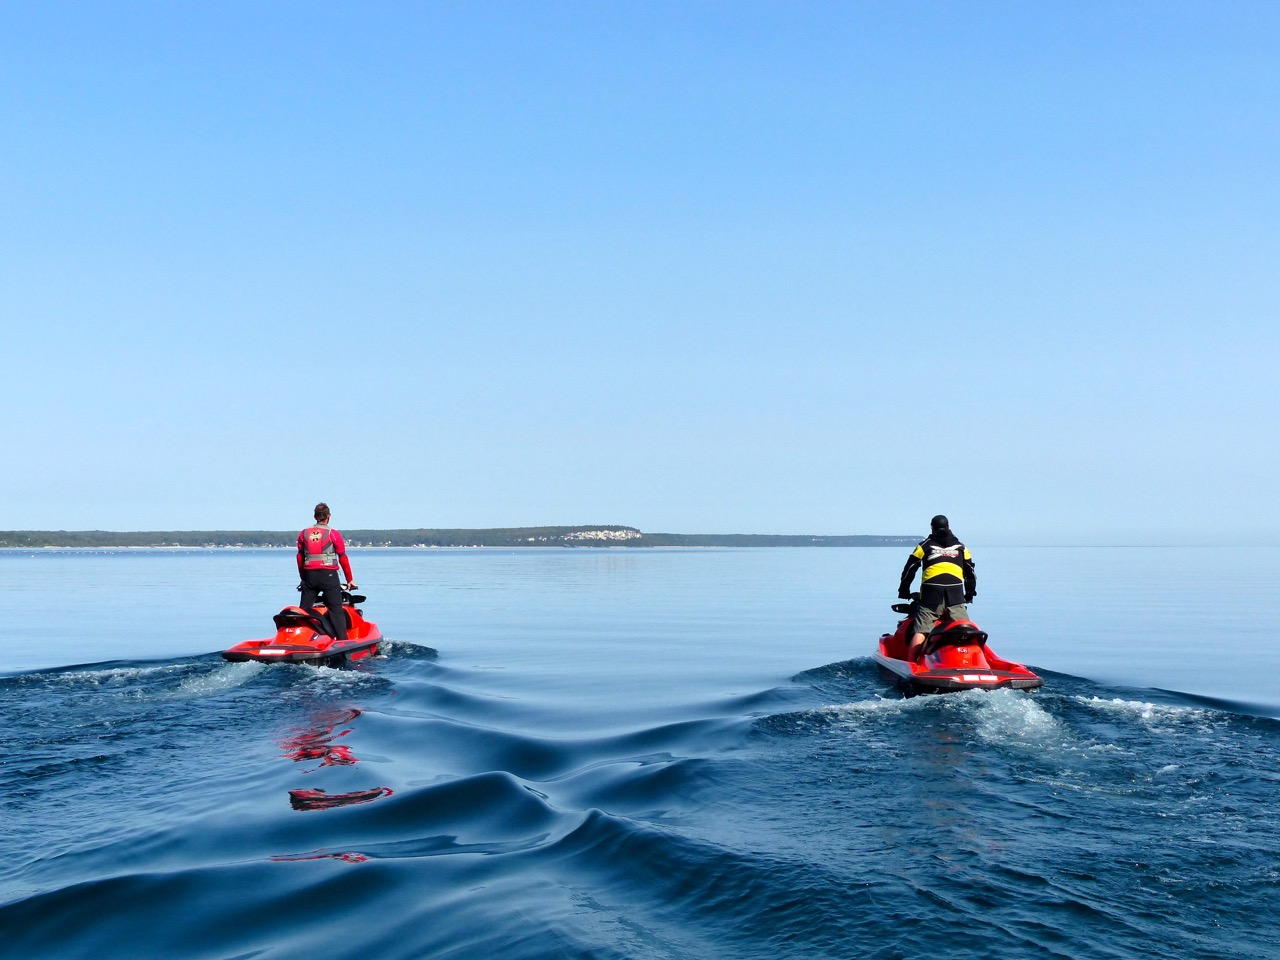 Calm Water on Bruce Peninsula Sea Doo tour